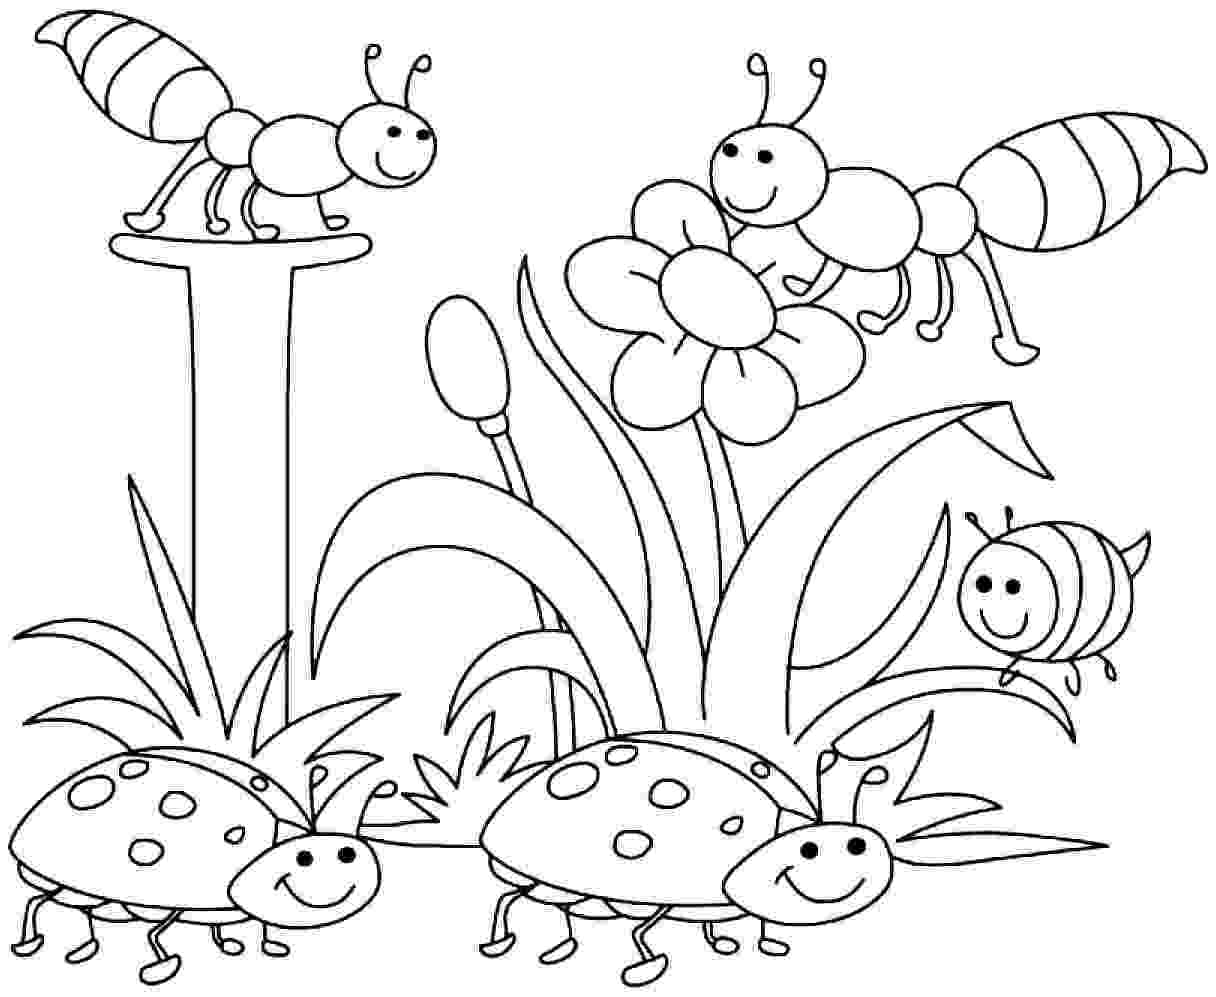 coloring pages for spring spring flower coloring pages to download and print for free pages for spring coloring